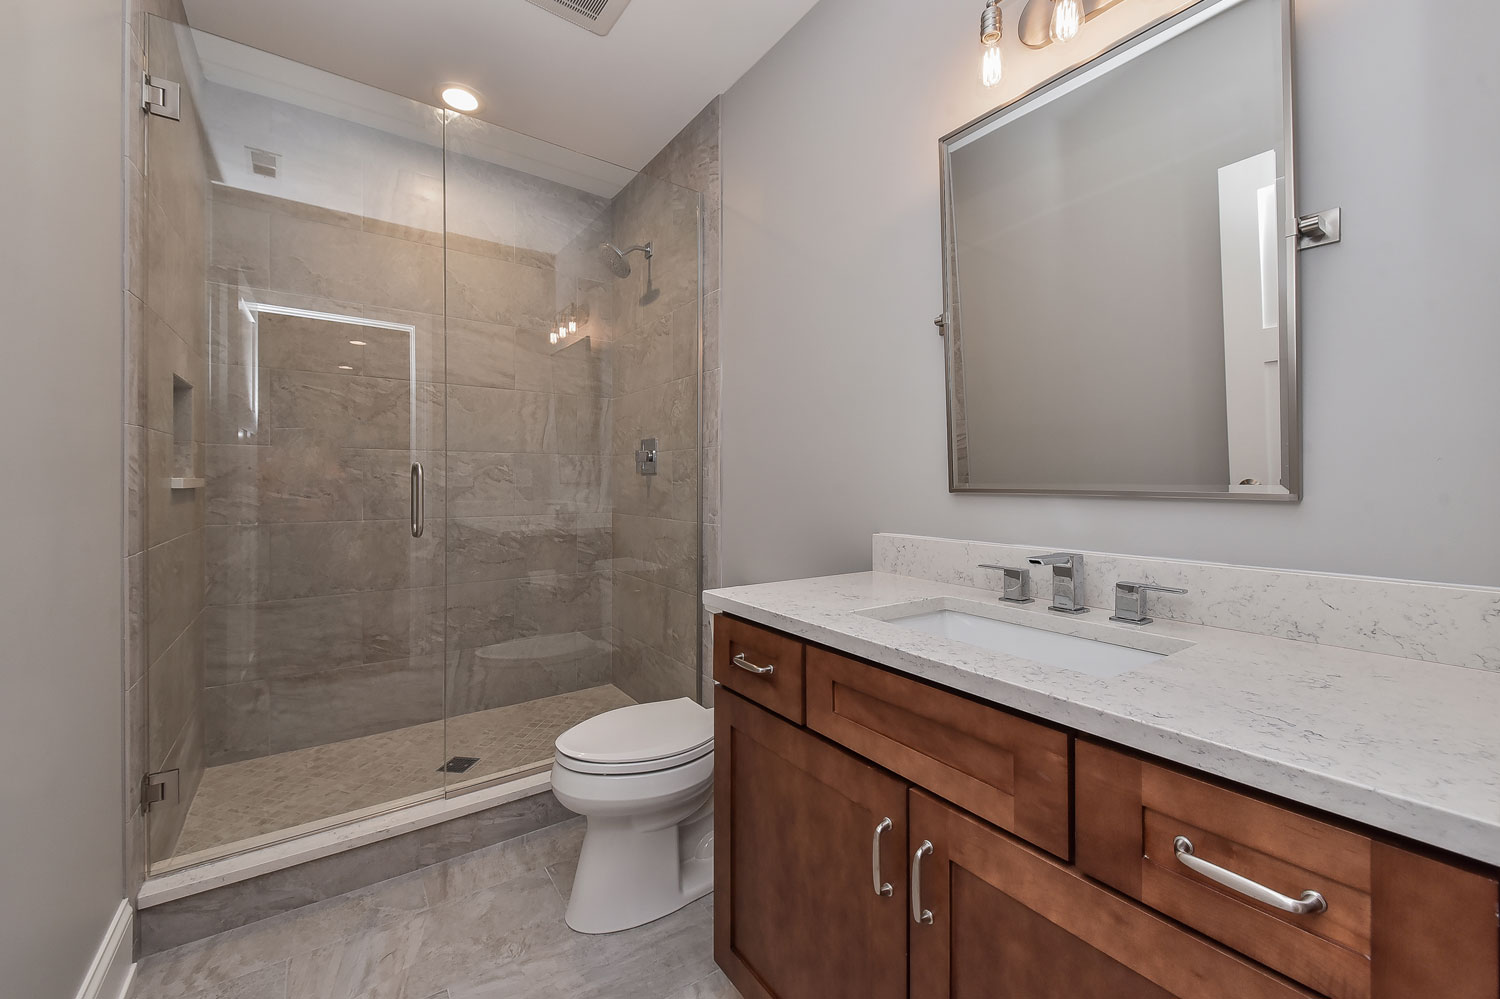 Naperville Hall Bathroom Remodel Pictures Home Remodeling Contractors Sebring Design Build